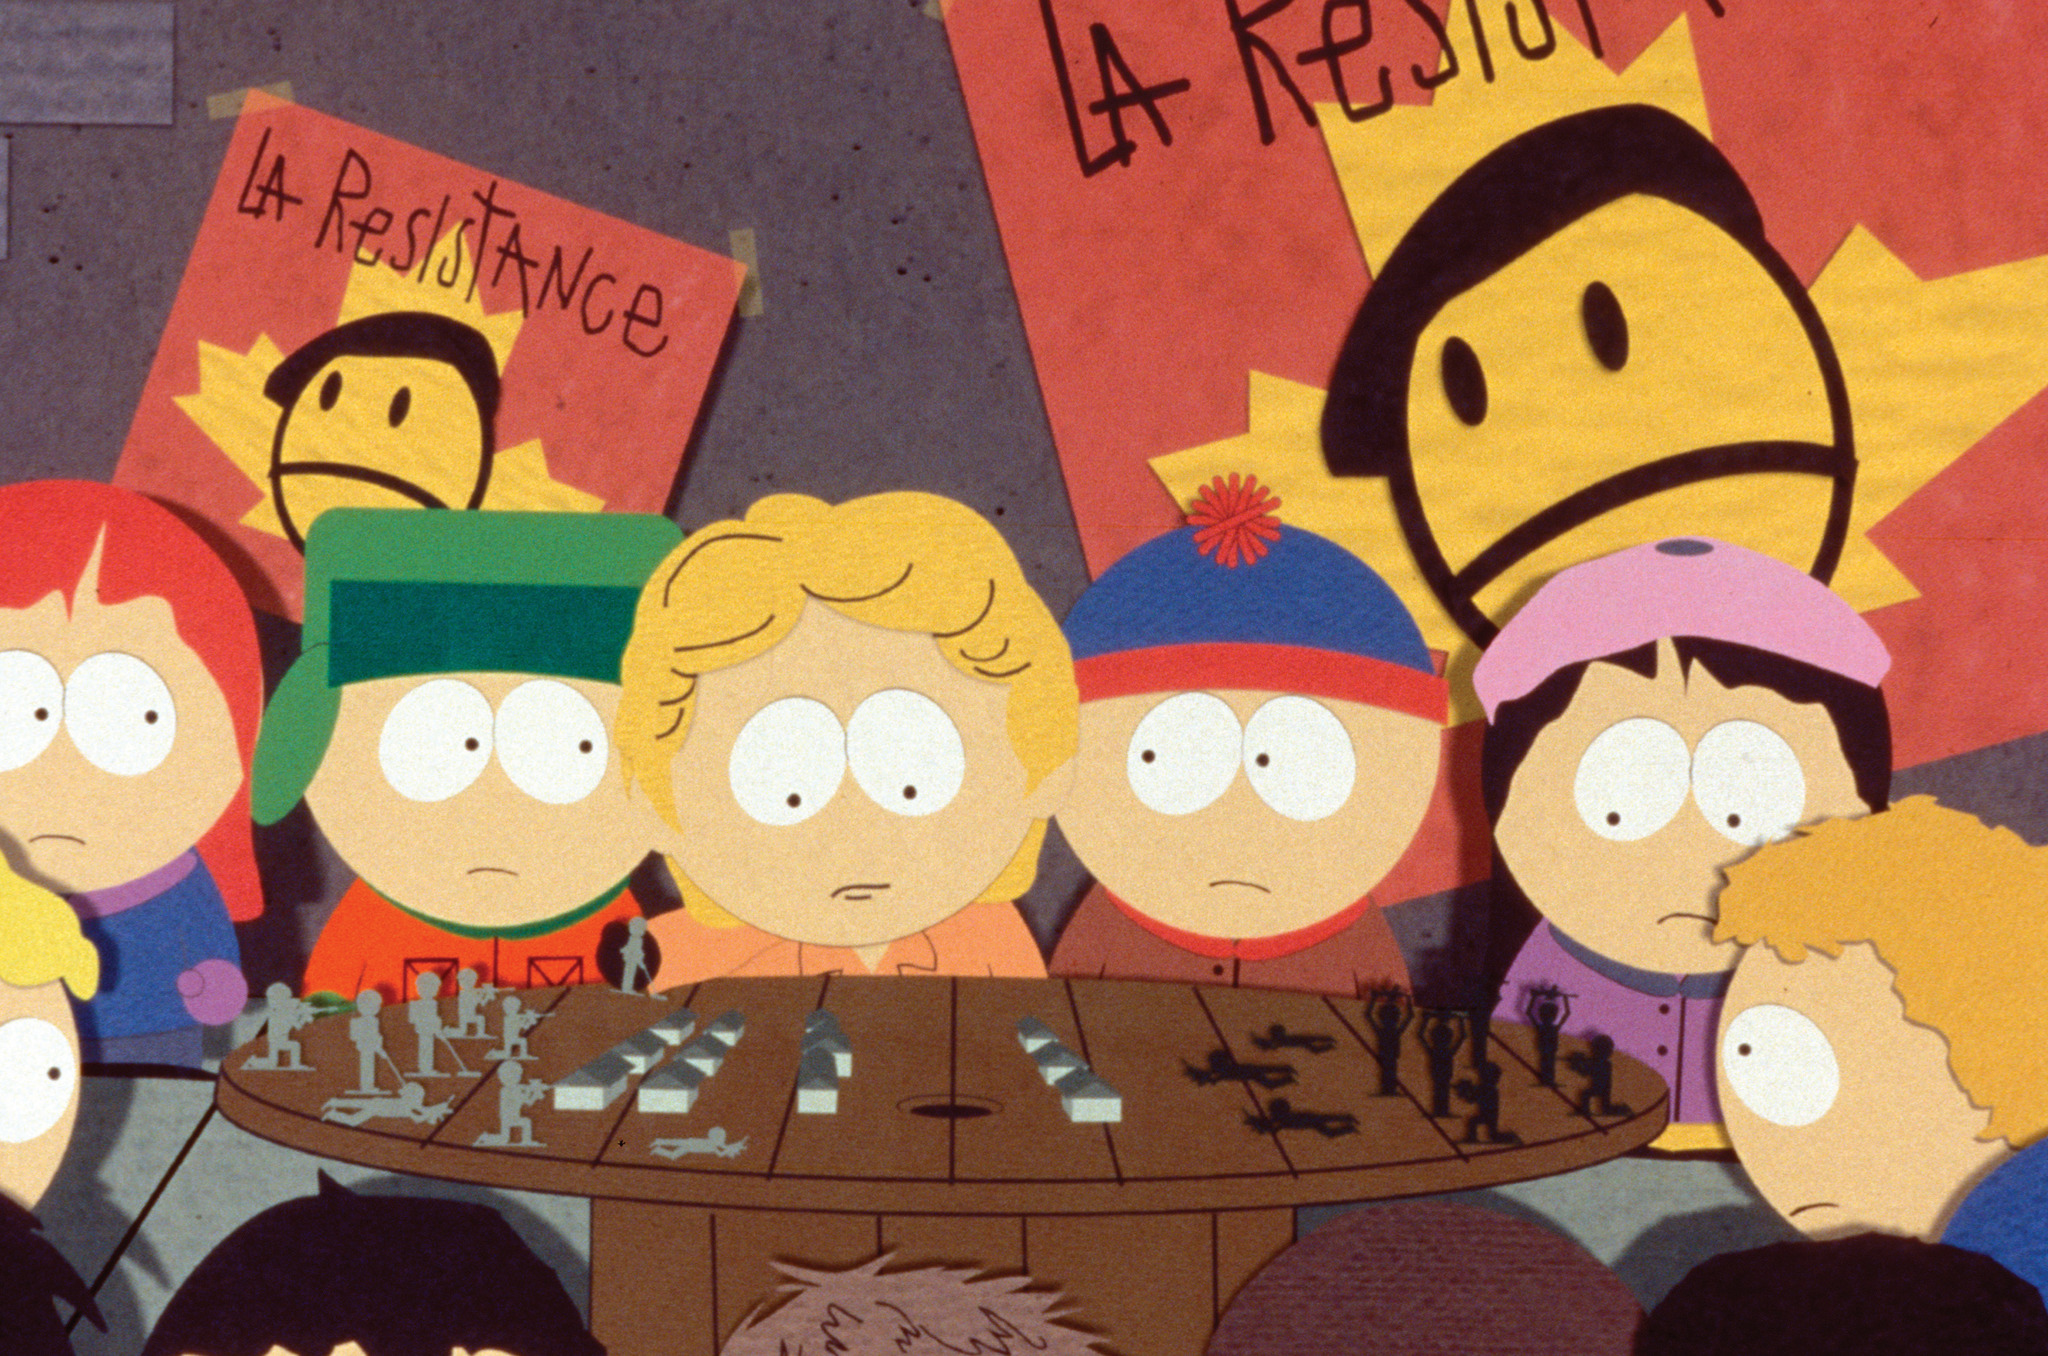 Funny films: South Park: Bigger, Longer & Uncut